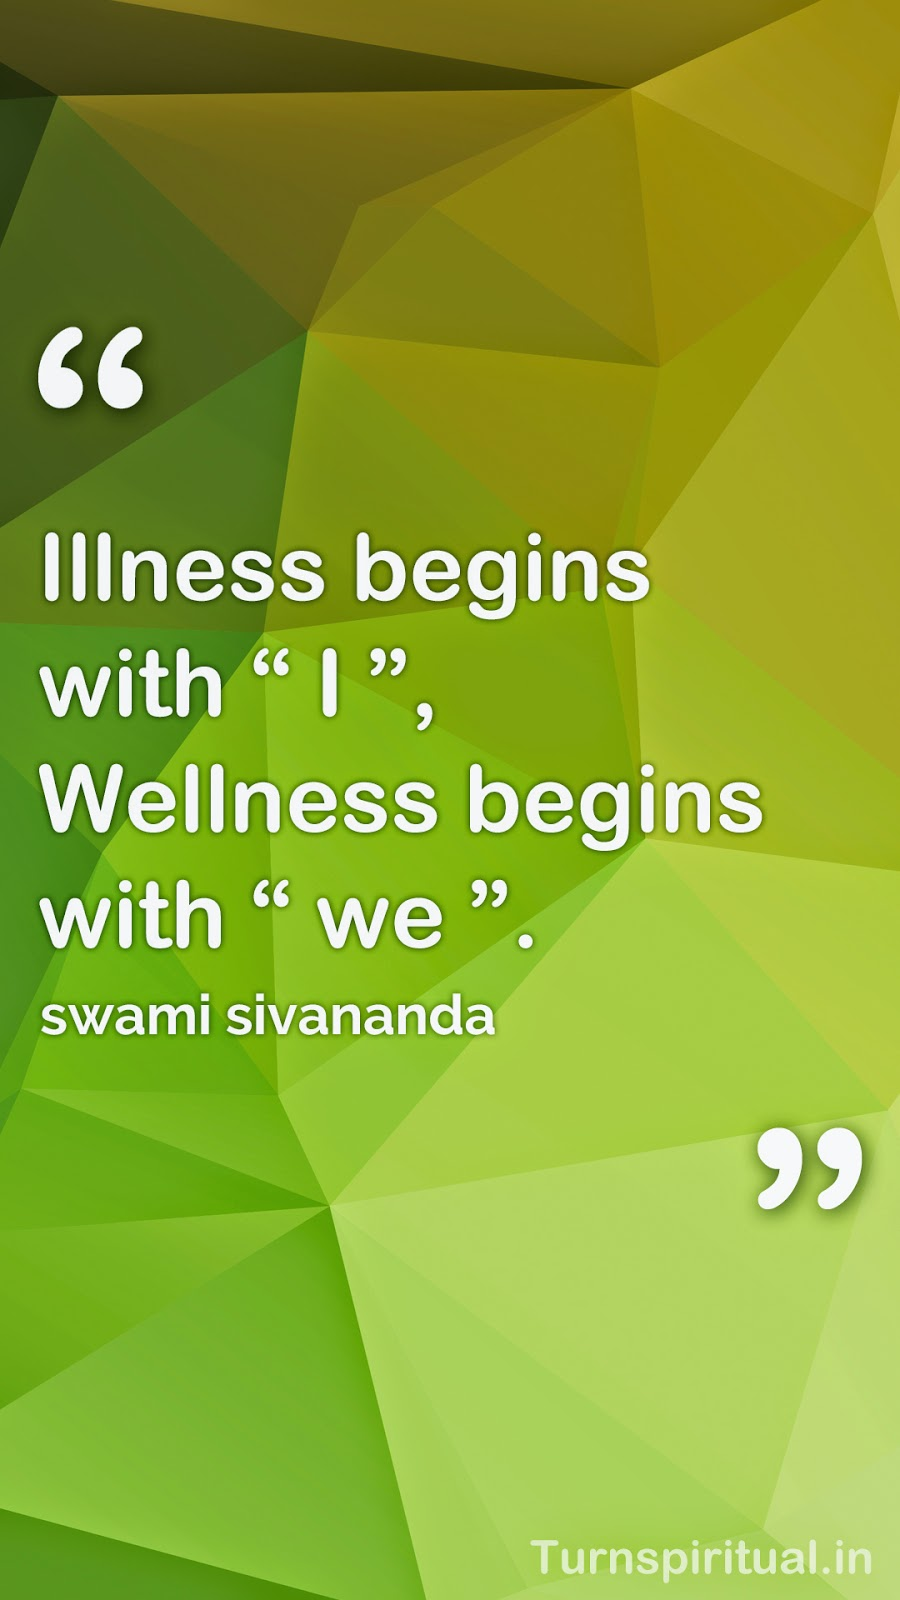 Hd wallpaper quotes for mobile - 6 Lowpoly Hd Mobile Wallpapers Of Swami Sivananda Quotes Free Download Turnspiritual In